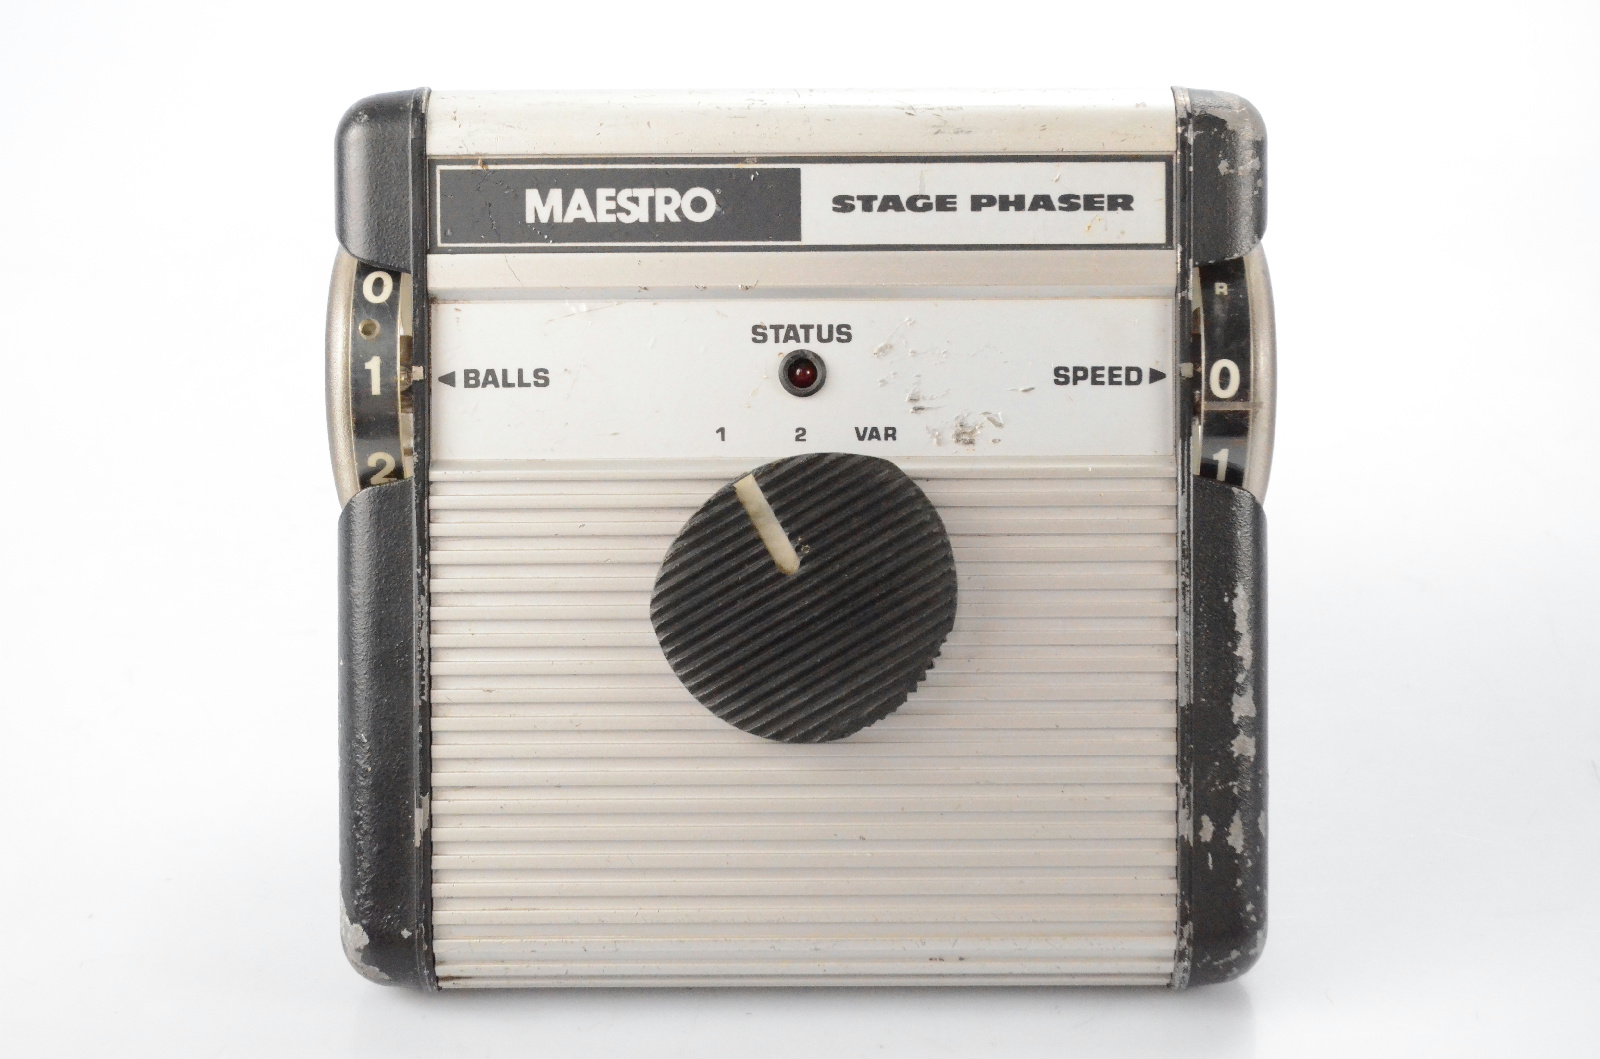 Maestro MSP Stage Phaser Pedal Vintage Rare #32417